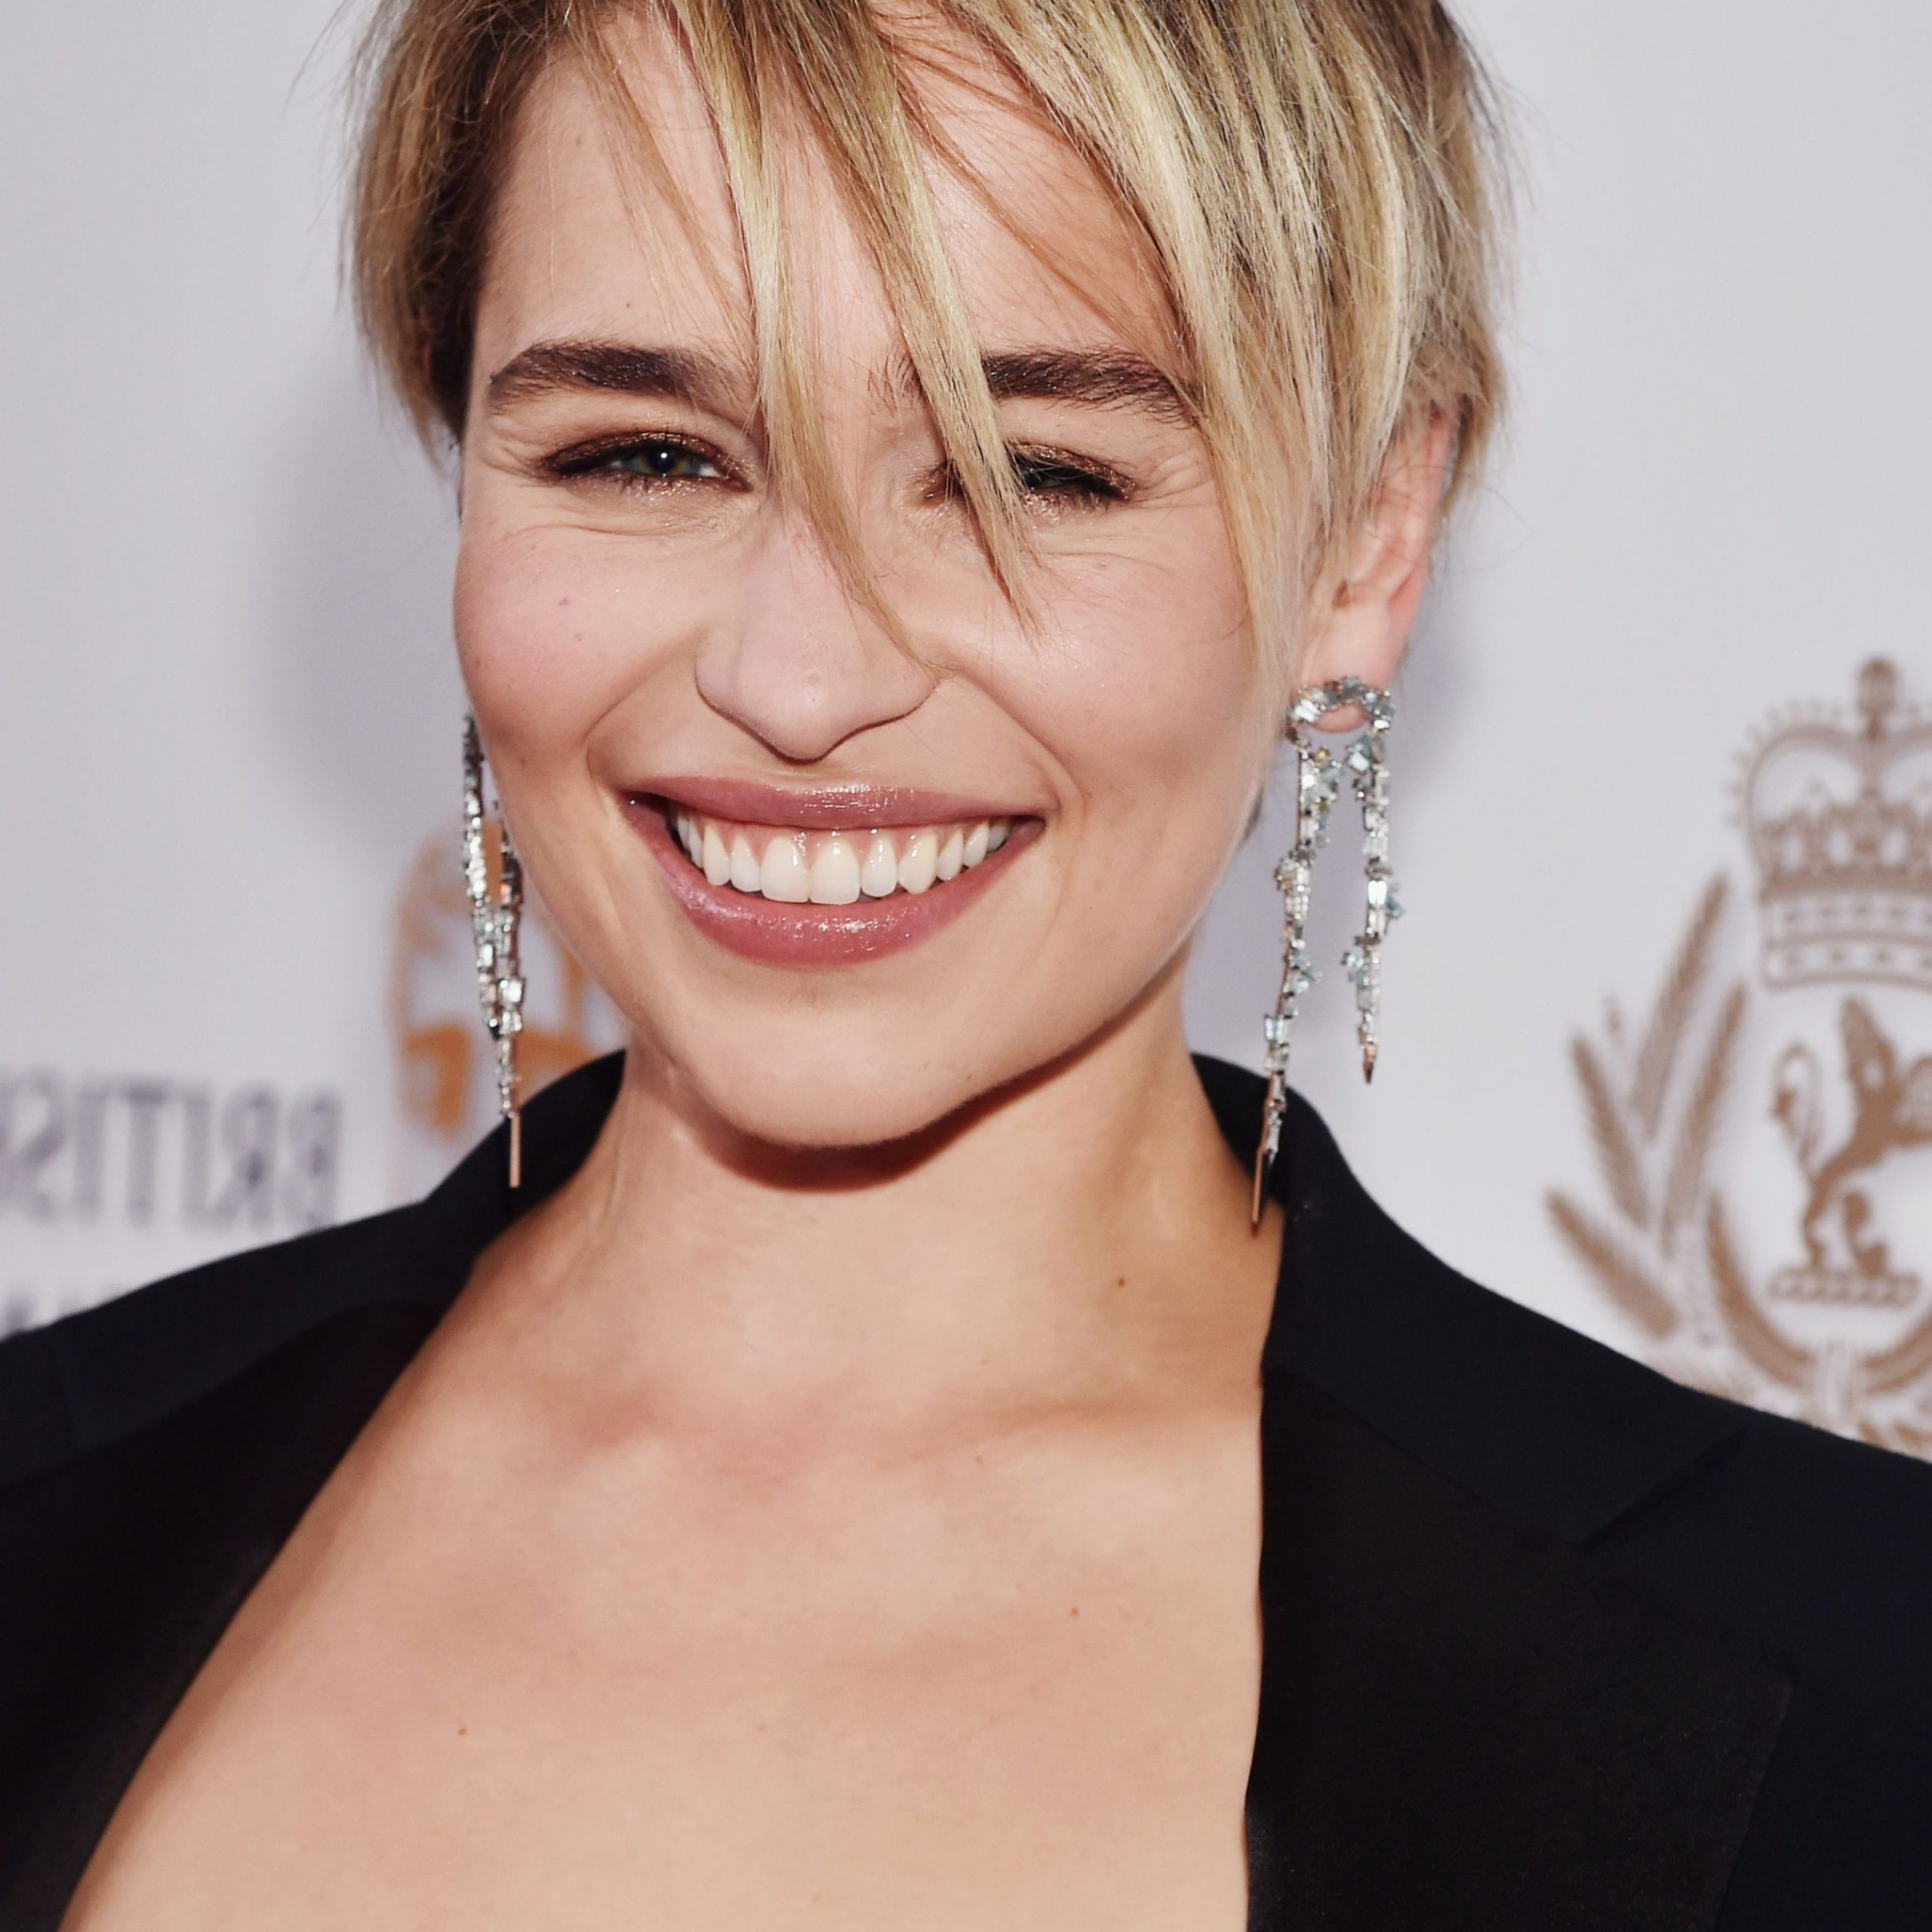 70 Best Pixie Cut Hairstyle Ideas 2019 – Cute Celebrity Throughout Long Curly Pixie Haircuts With Subtle Highlights (View 7 of 20)